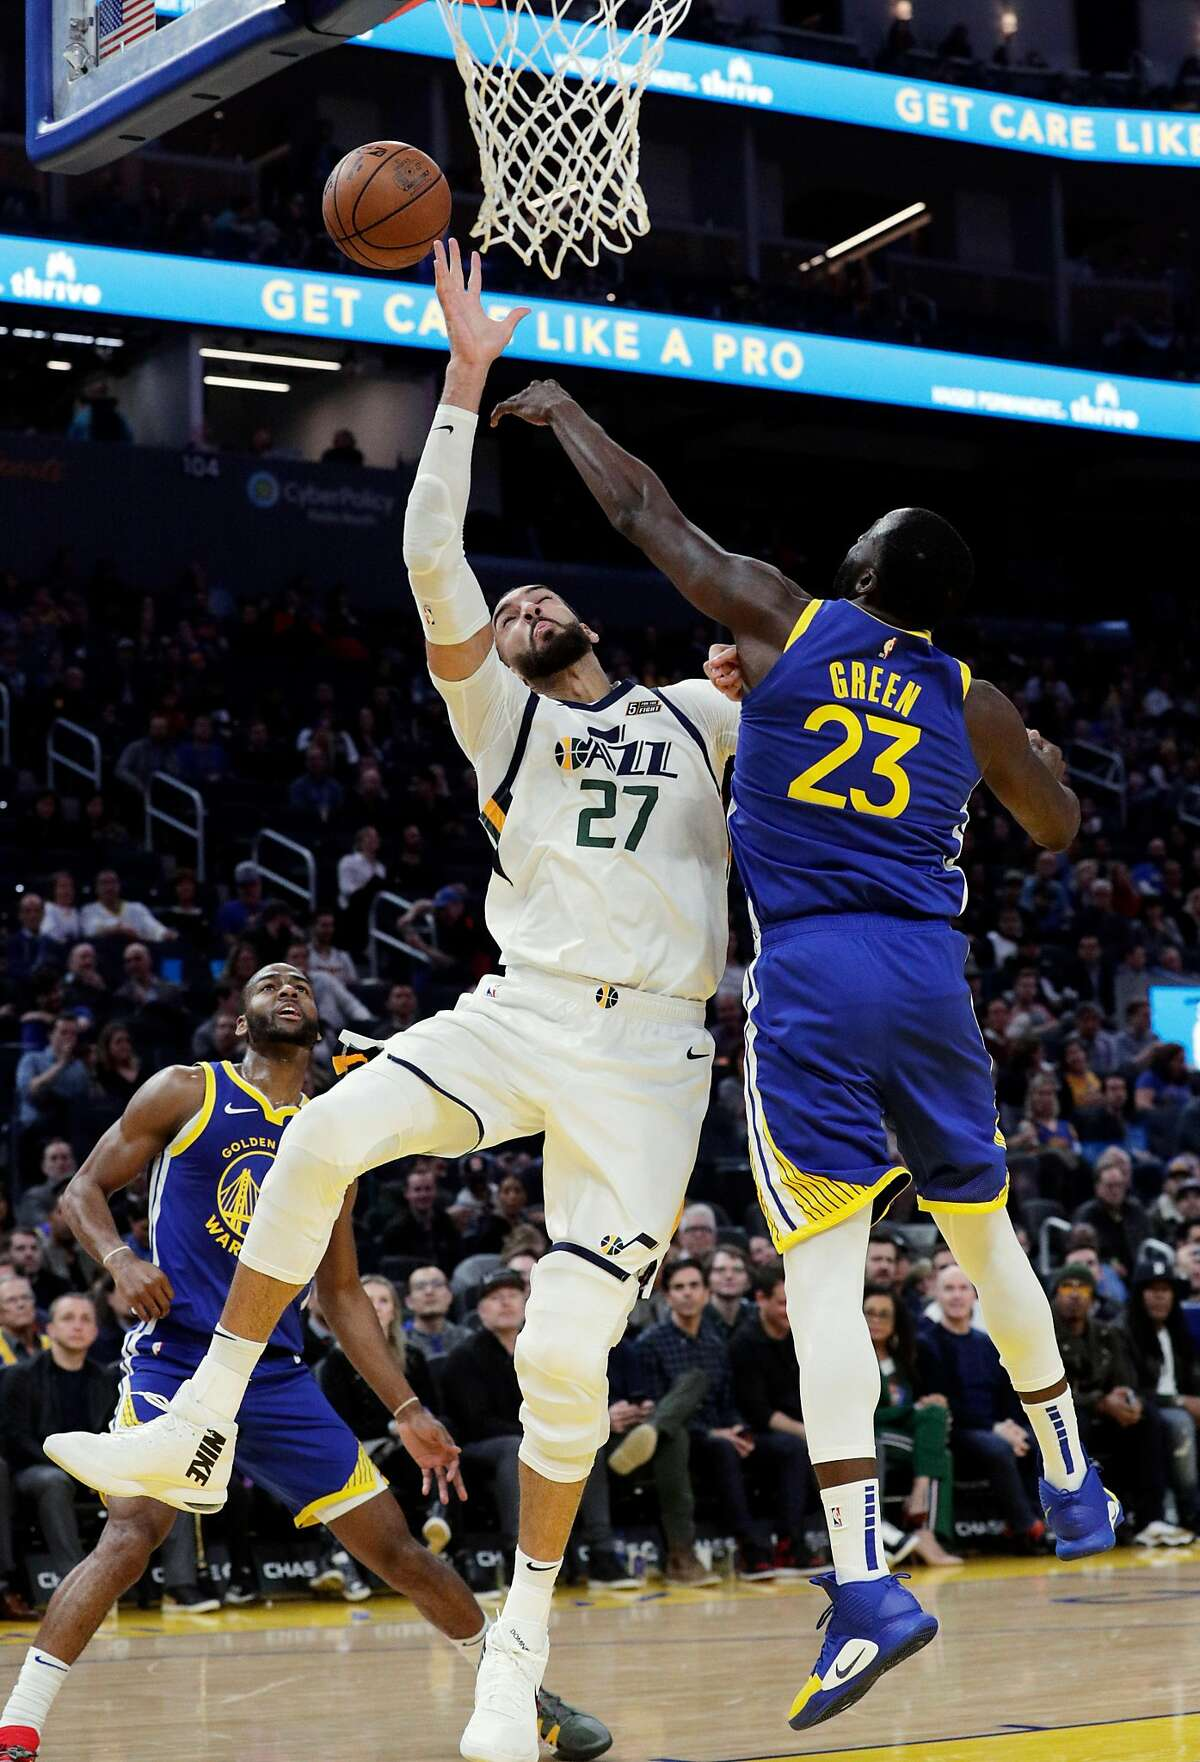 Draymond Green (23) deflects a pass intended for Rudy Gobert (27) in the first half as the Golden State Warriors played the Utah Jazz at Chase Center in San Francisco, Calif., on Wednesday, January 22, 2020.